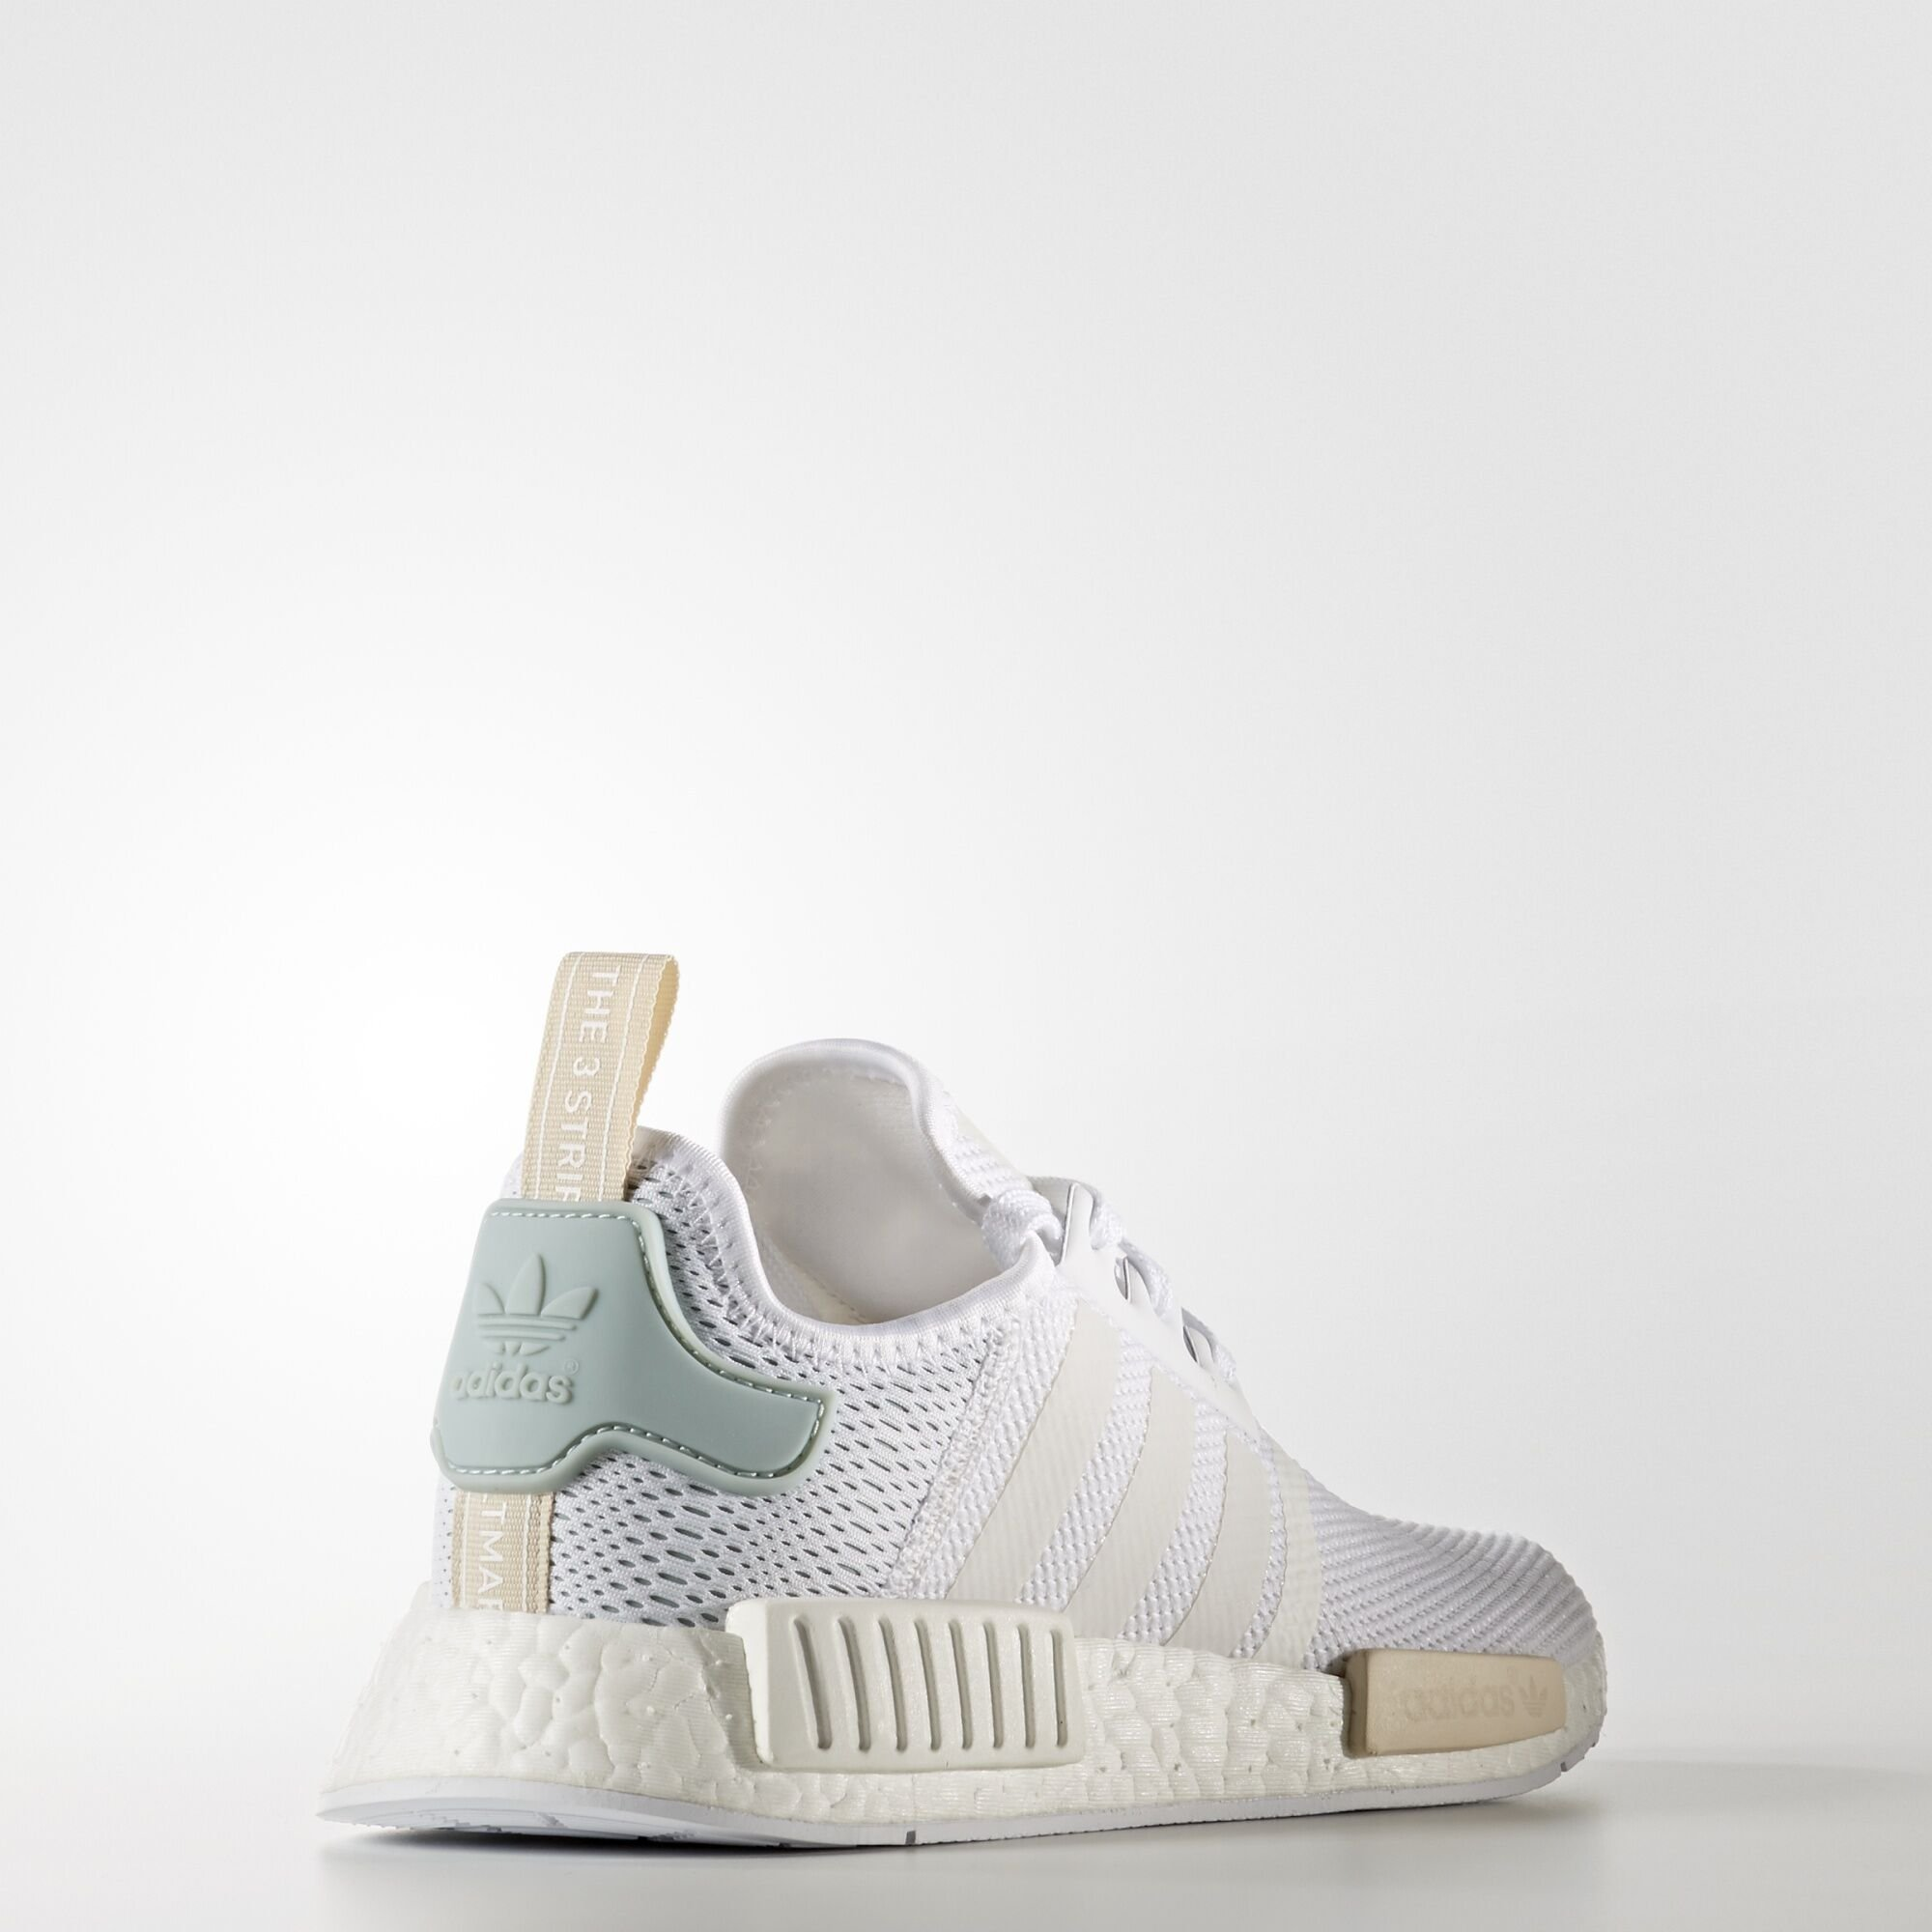 adidas  NMD R1 Tactile Green(W) (BY3033)